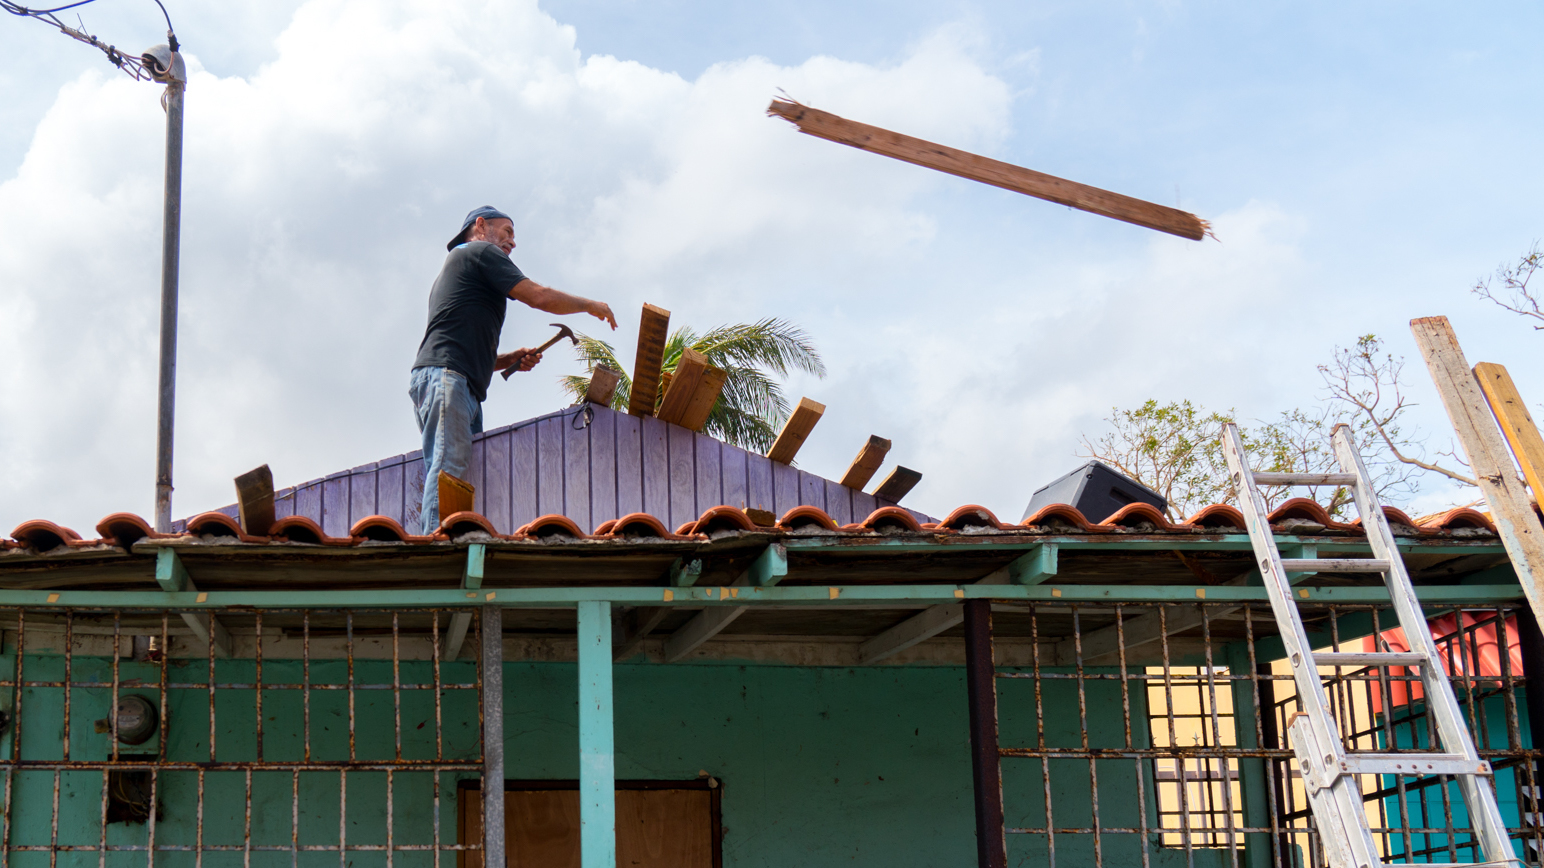 A man's works on his house, which was severely damaged by Hurricane Maria, in San Juan's Playita neighborhood in Puerto Rico. Infrastructure problems that predated the hurricane dramatically worsened the situation in Playita. (Angel Valentin for NPR)